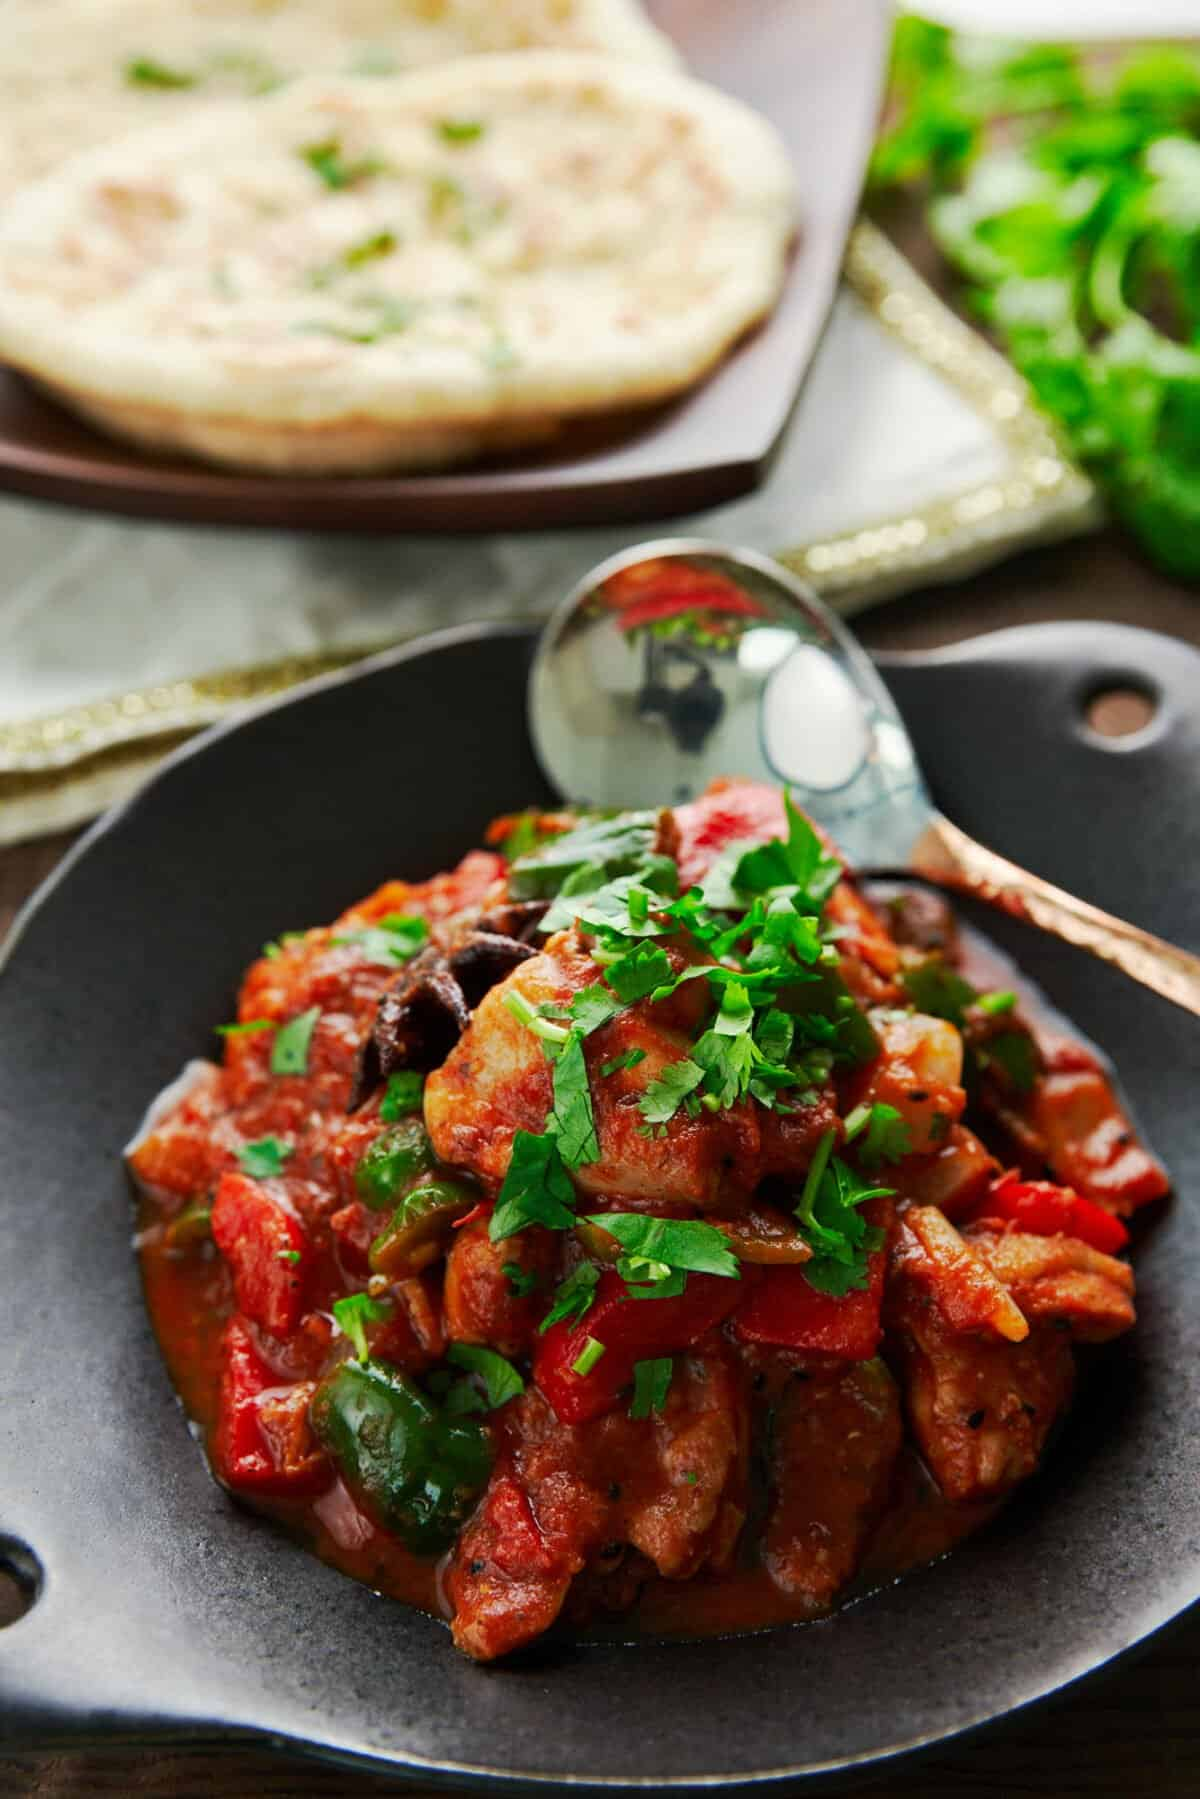 Chicken Jalfrezi is an easy fragrant chicken, tomato and pepper stir-fry that's a staple of Indian Chineese cuisine.